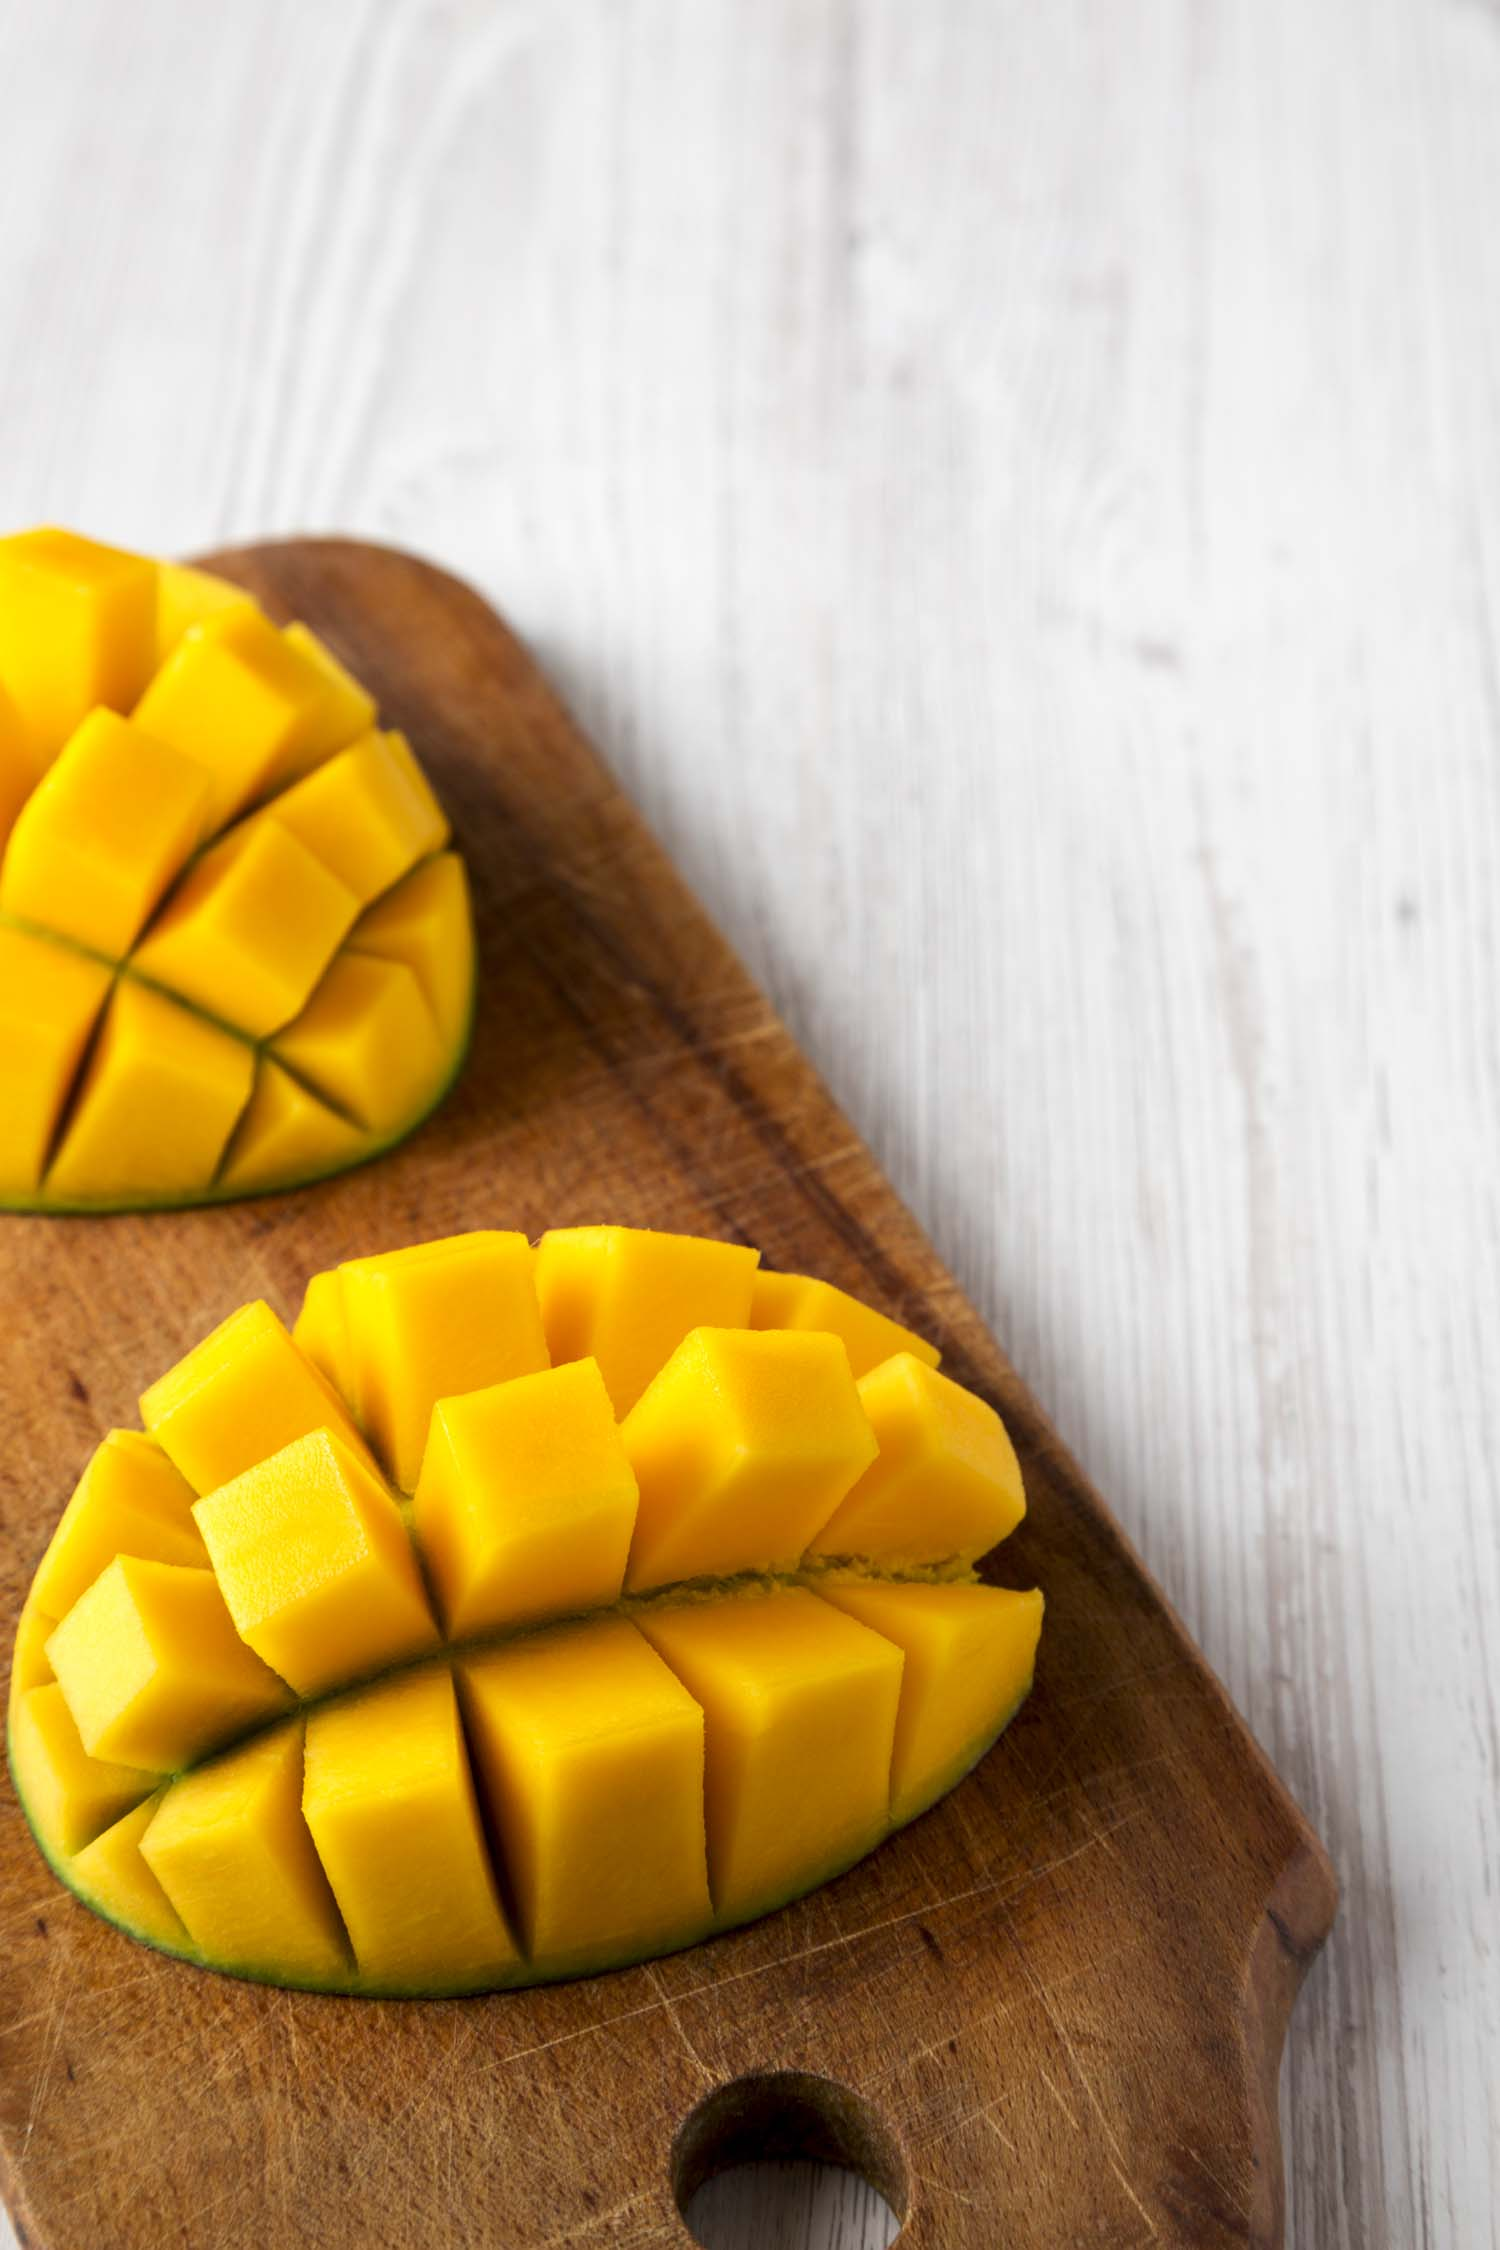 Sweet mango on rustic wooden board on a white wooden table, low angle view. Close-up. Copy space.